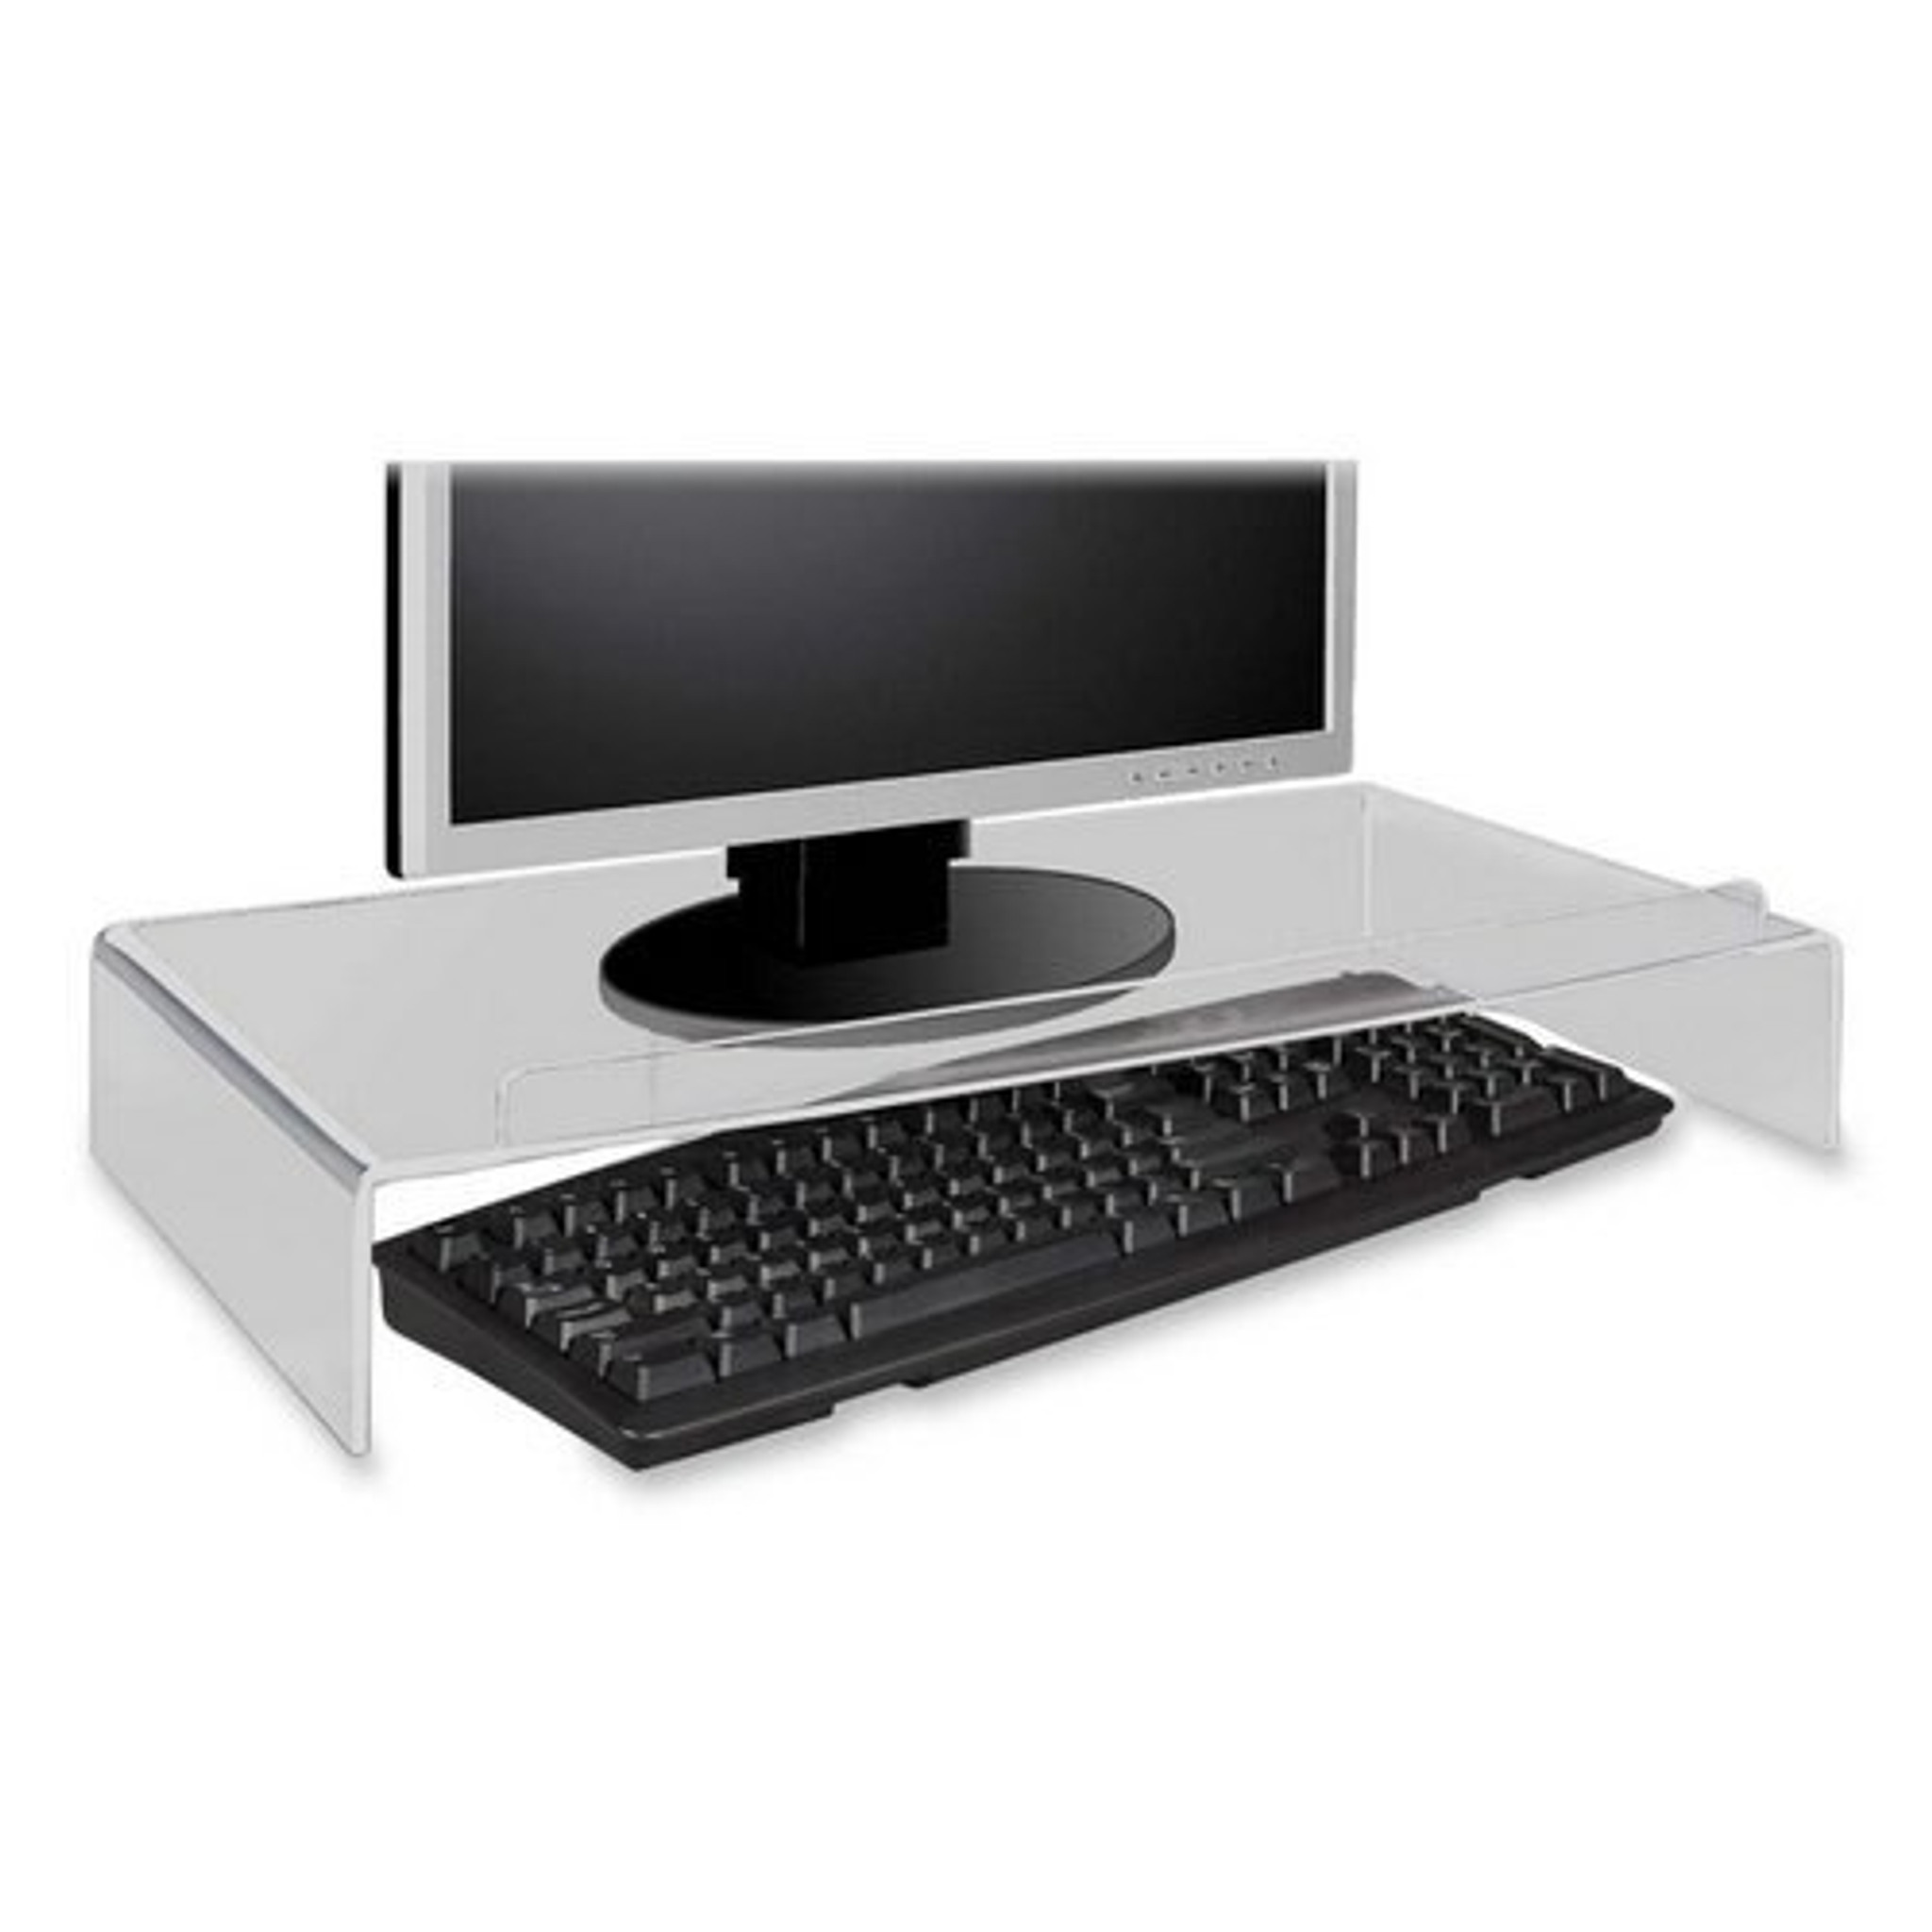 clear acrylic computer monitor stand riser desktop accessory